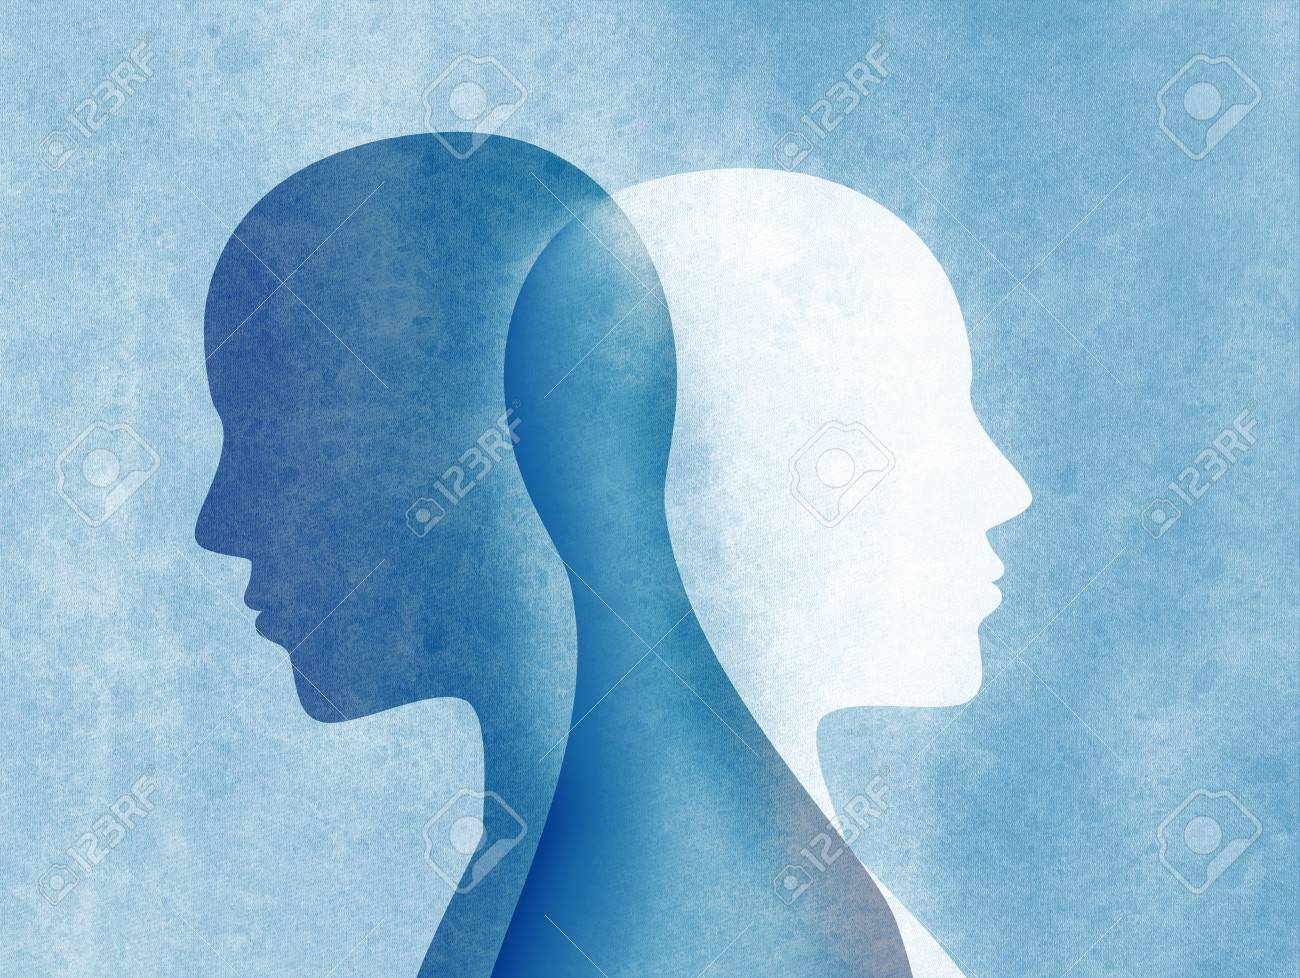 Bipolar disorder mind mental. Split personality. Mood disorder. Dual personality concept. Silhouette on blue background - 110618071